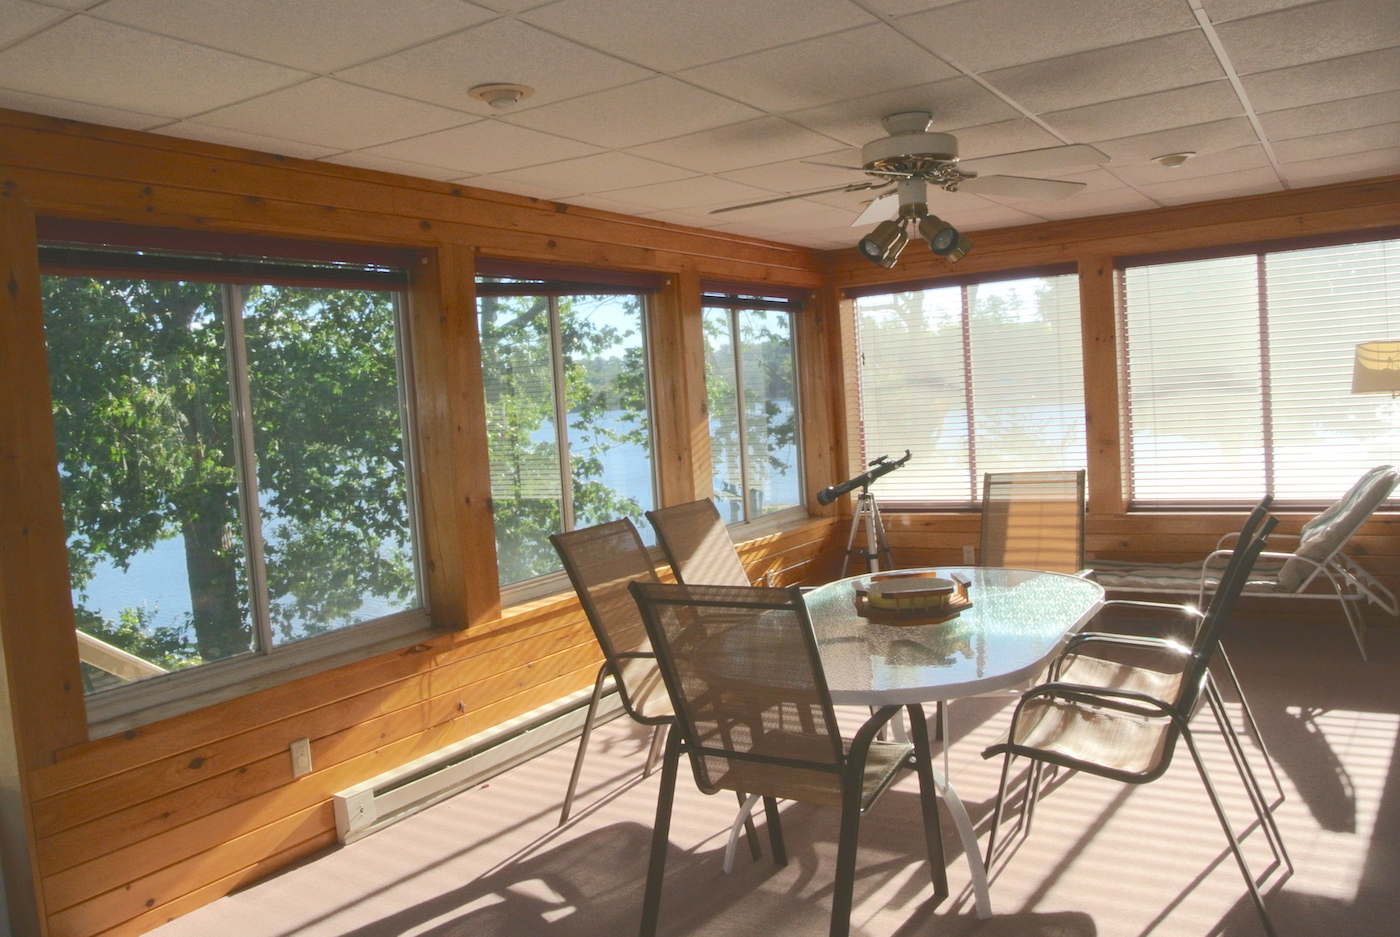 NH Lake Property for sale - Stocker Pond View